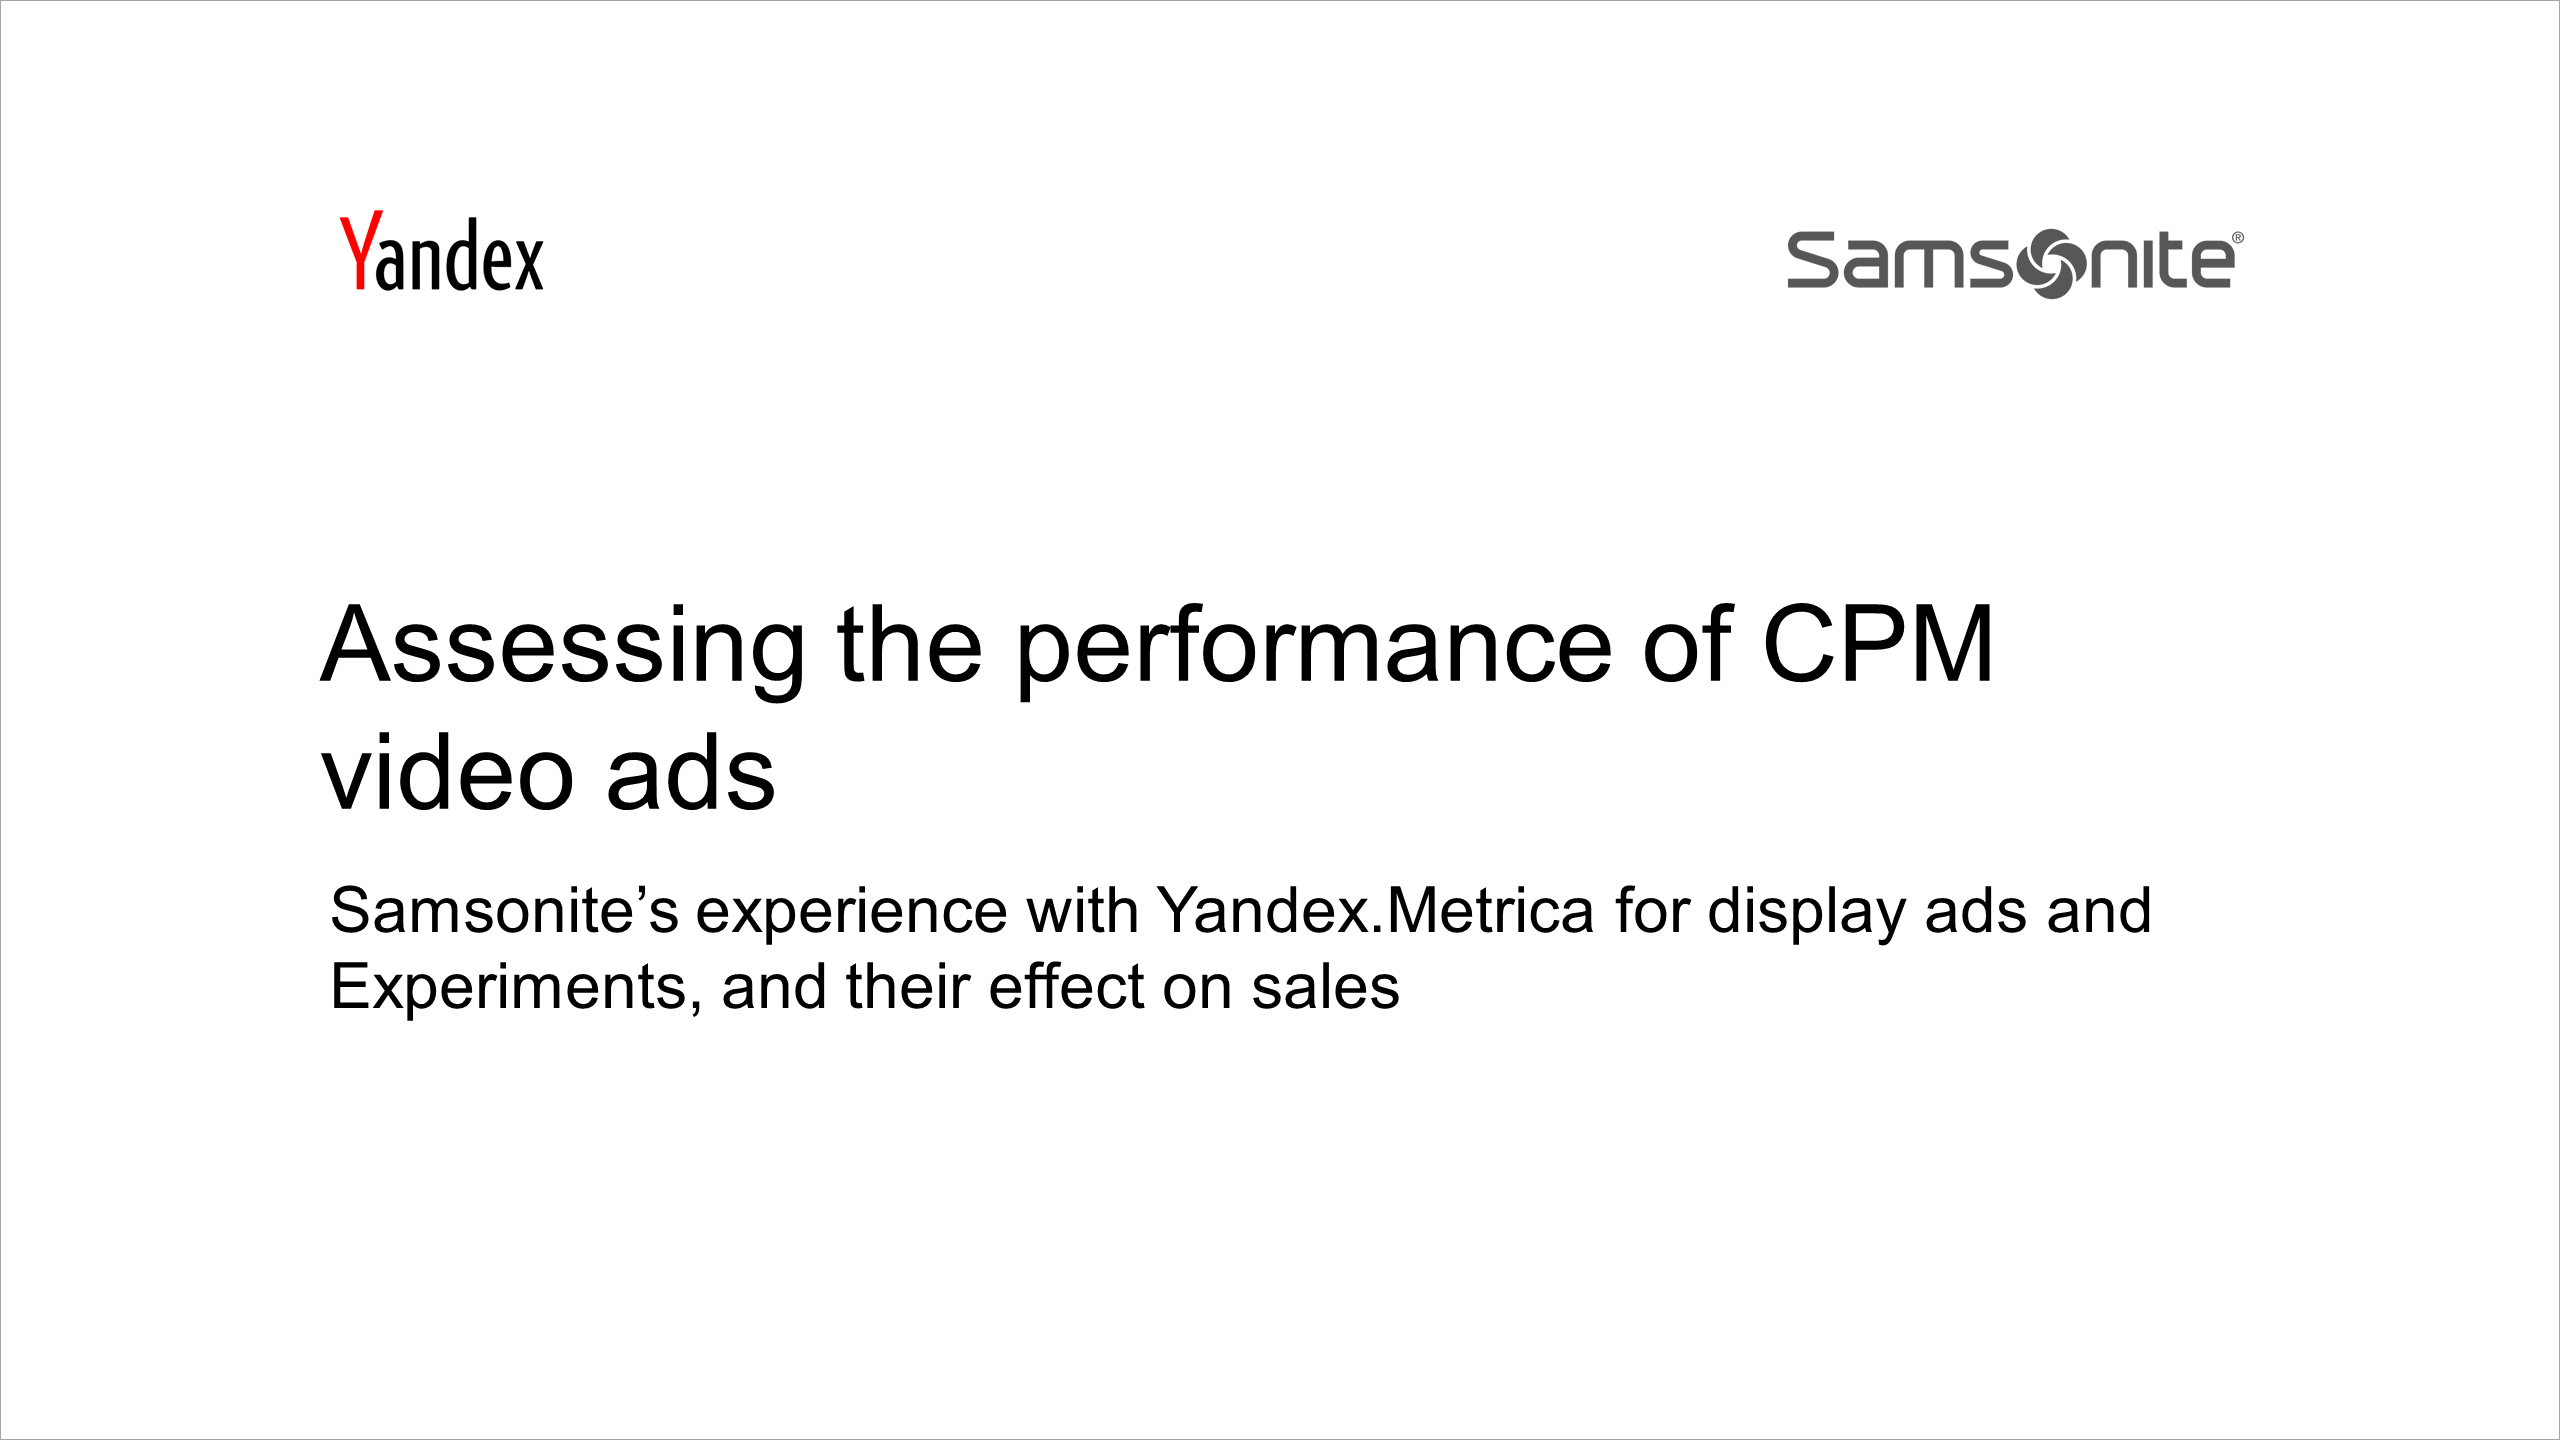 Assessing the performance of CPM video ads. Samsonite's experience with Yandex.Metrica for display ads and Experiments, and their effect on sales